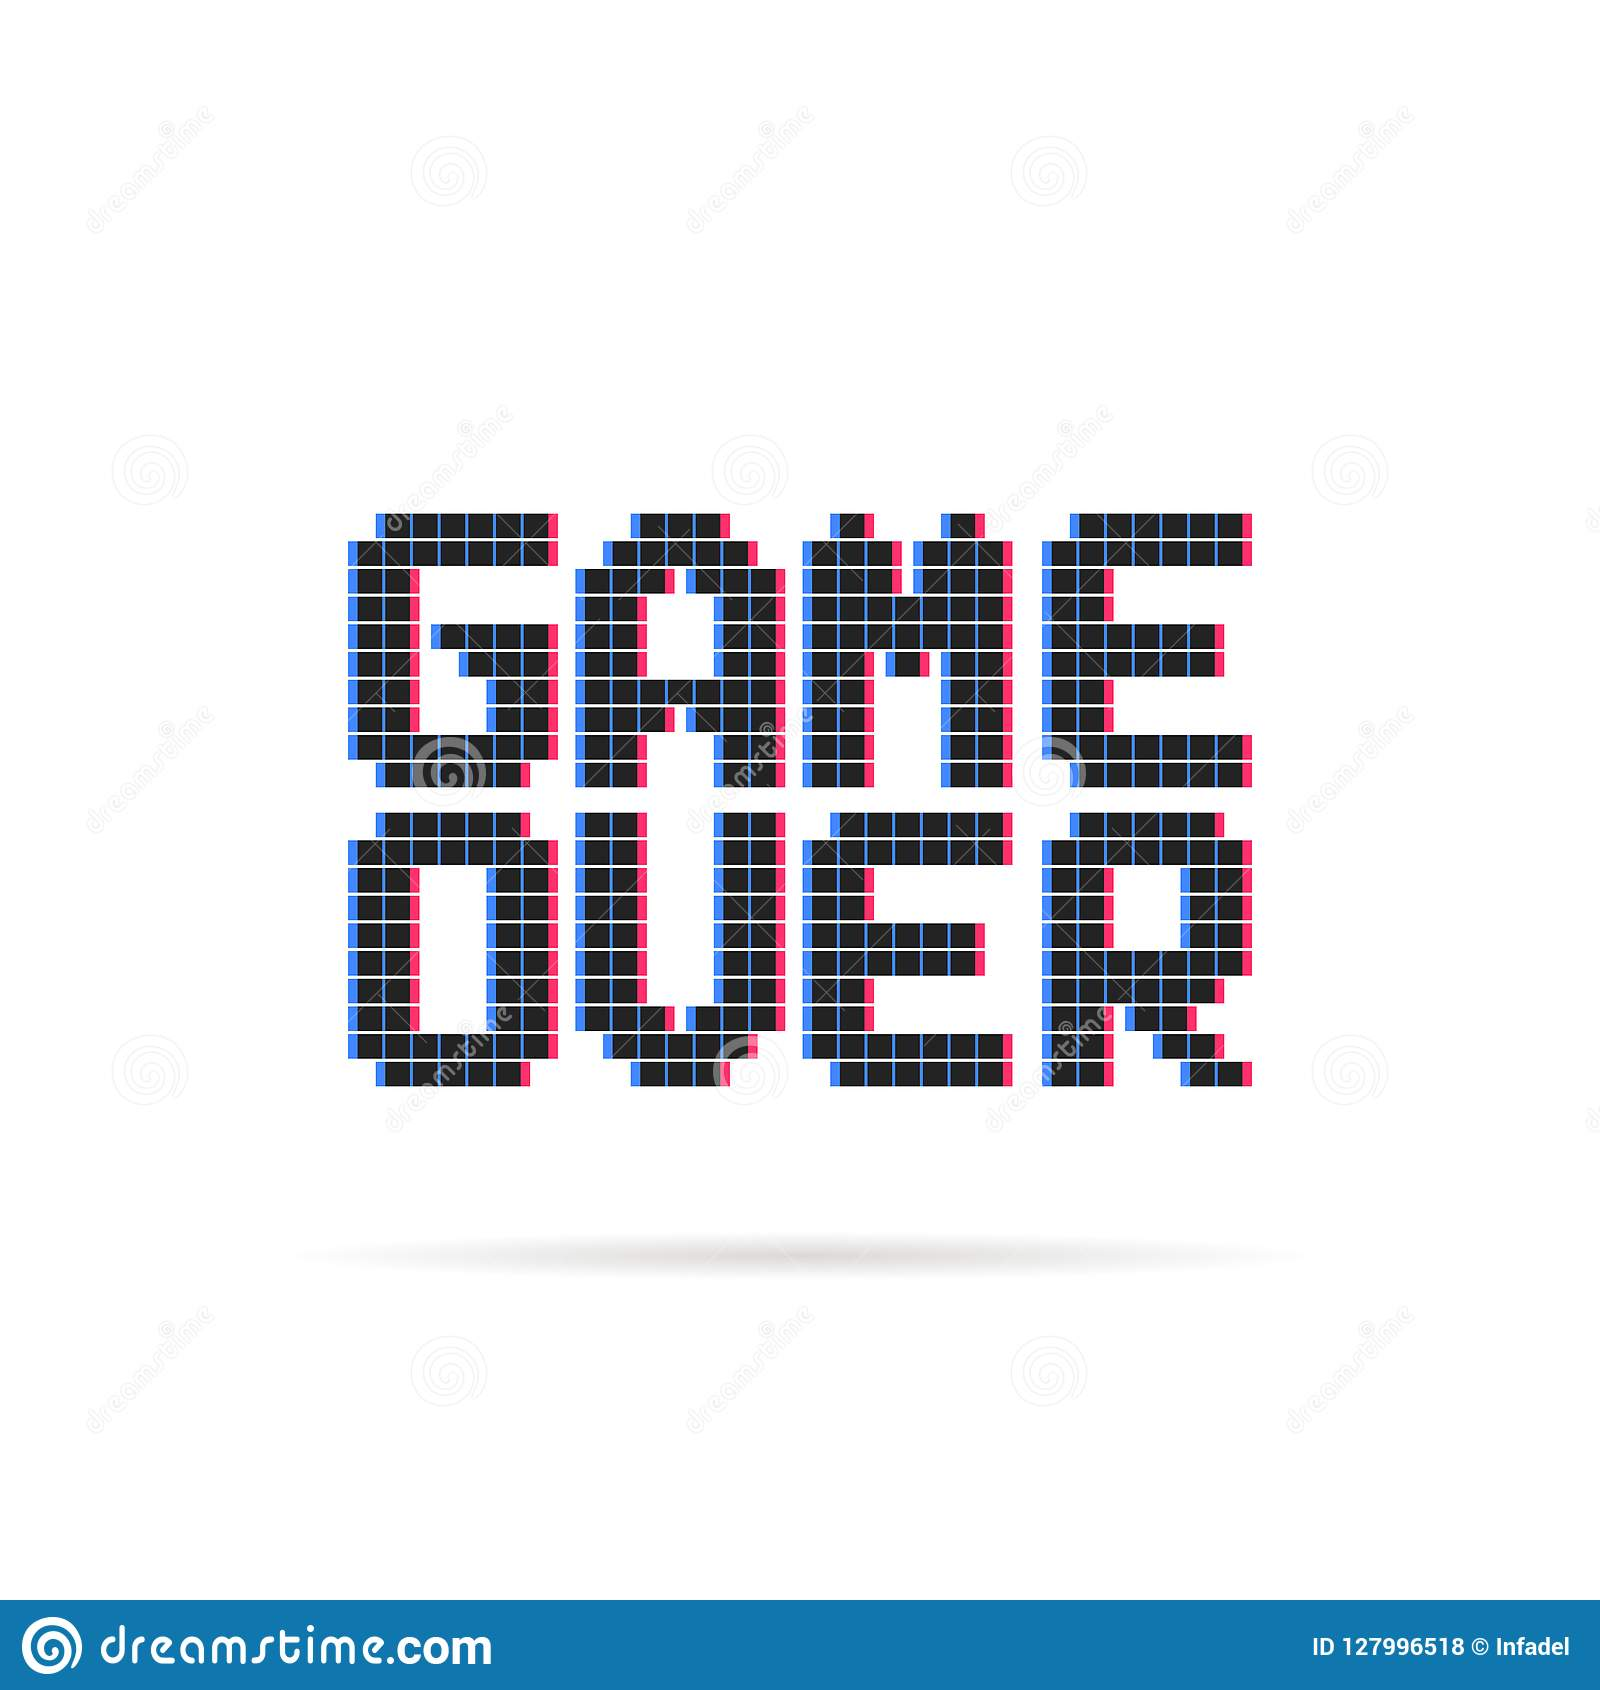 Game Over Logo Like Glitch Pixel Art Style Stock Vector